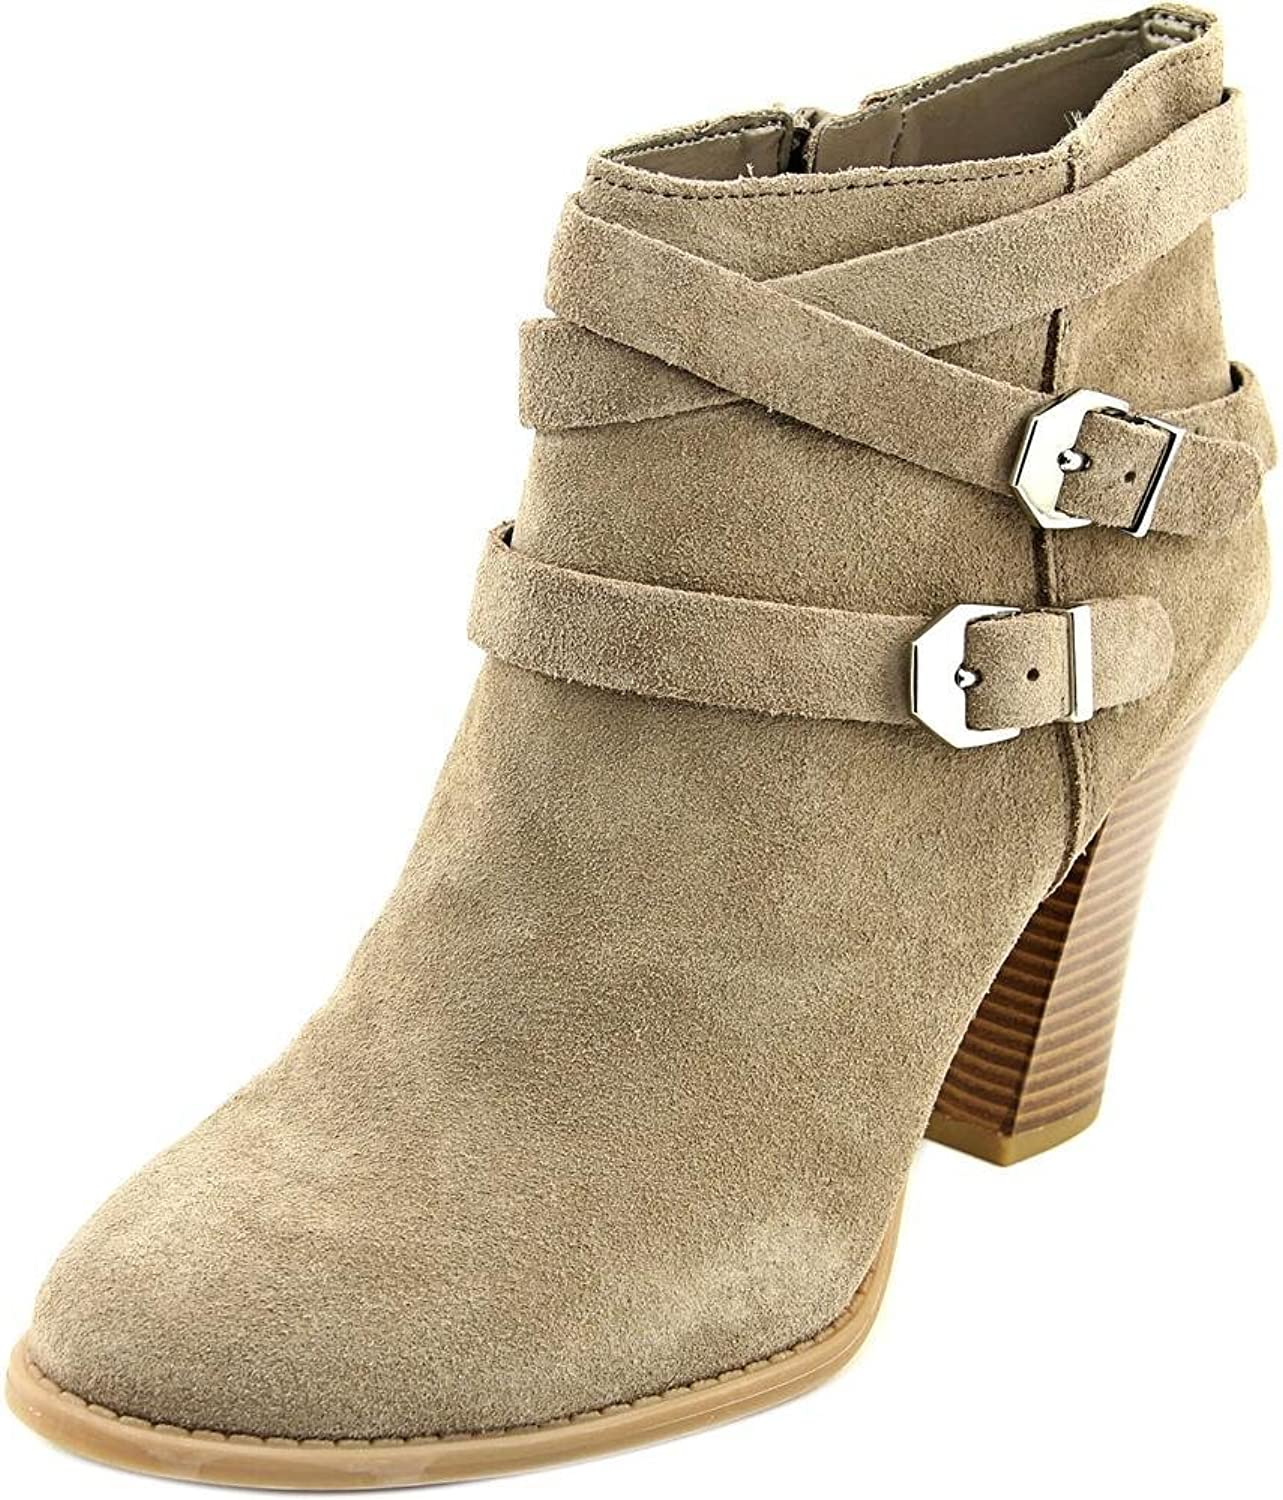 INC International Concepts Womens Jaydie Suede Round Toe Ankle Cowboy Boots